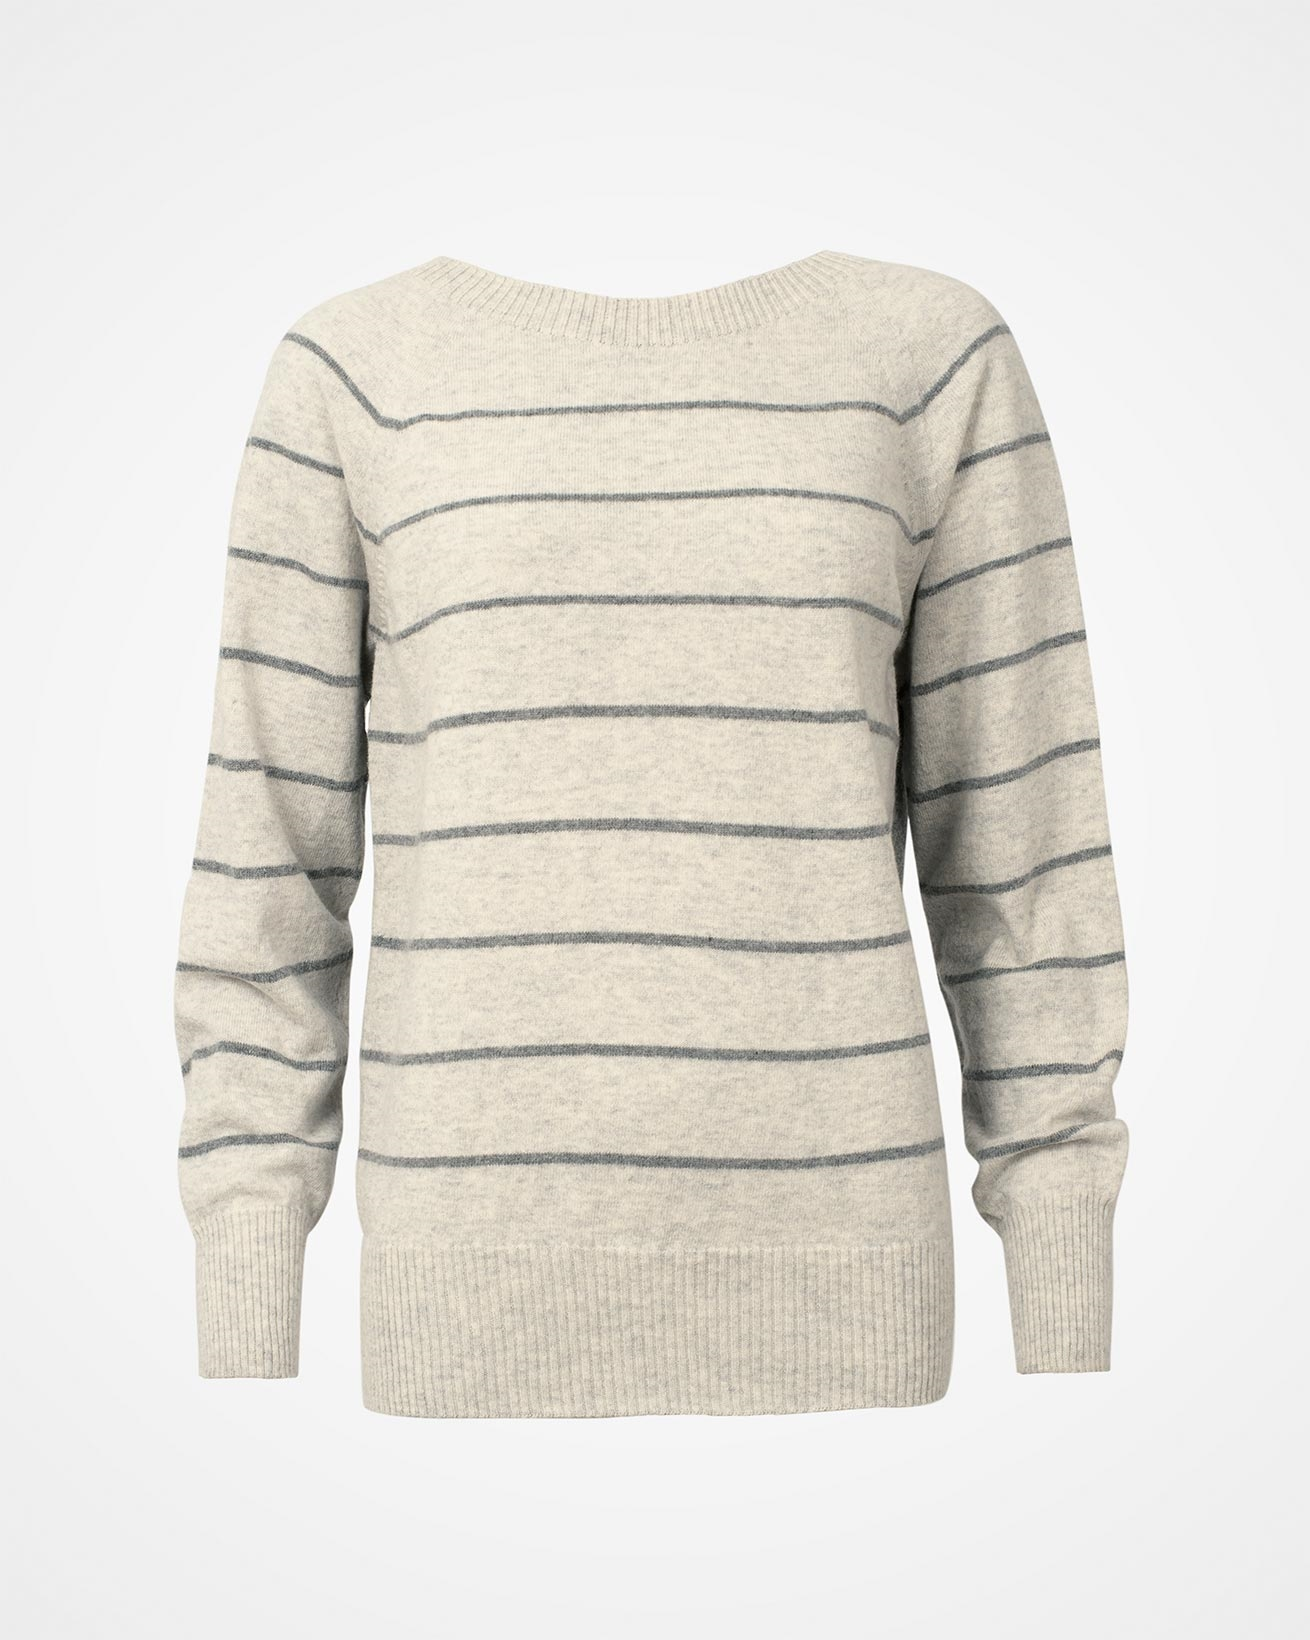 7591_supersoft-crew-jumper_pearl-grey_front.jpg